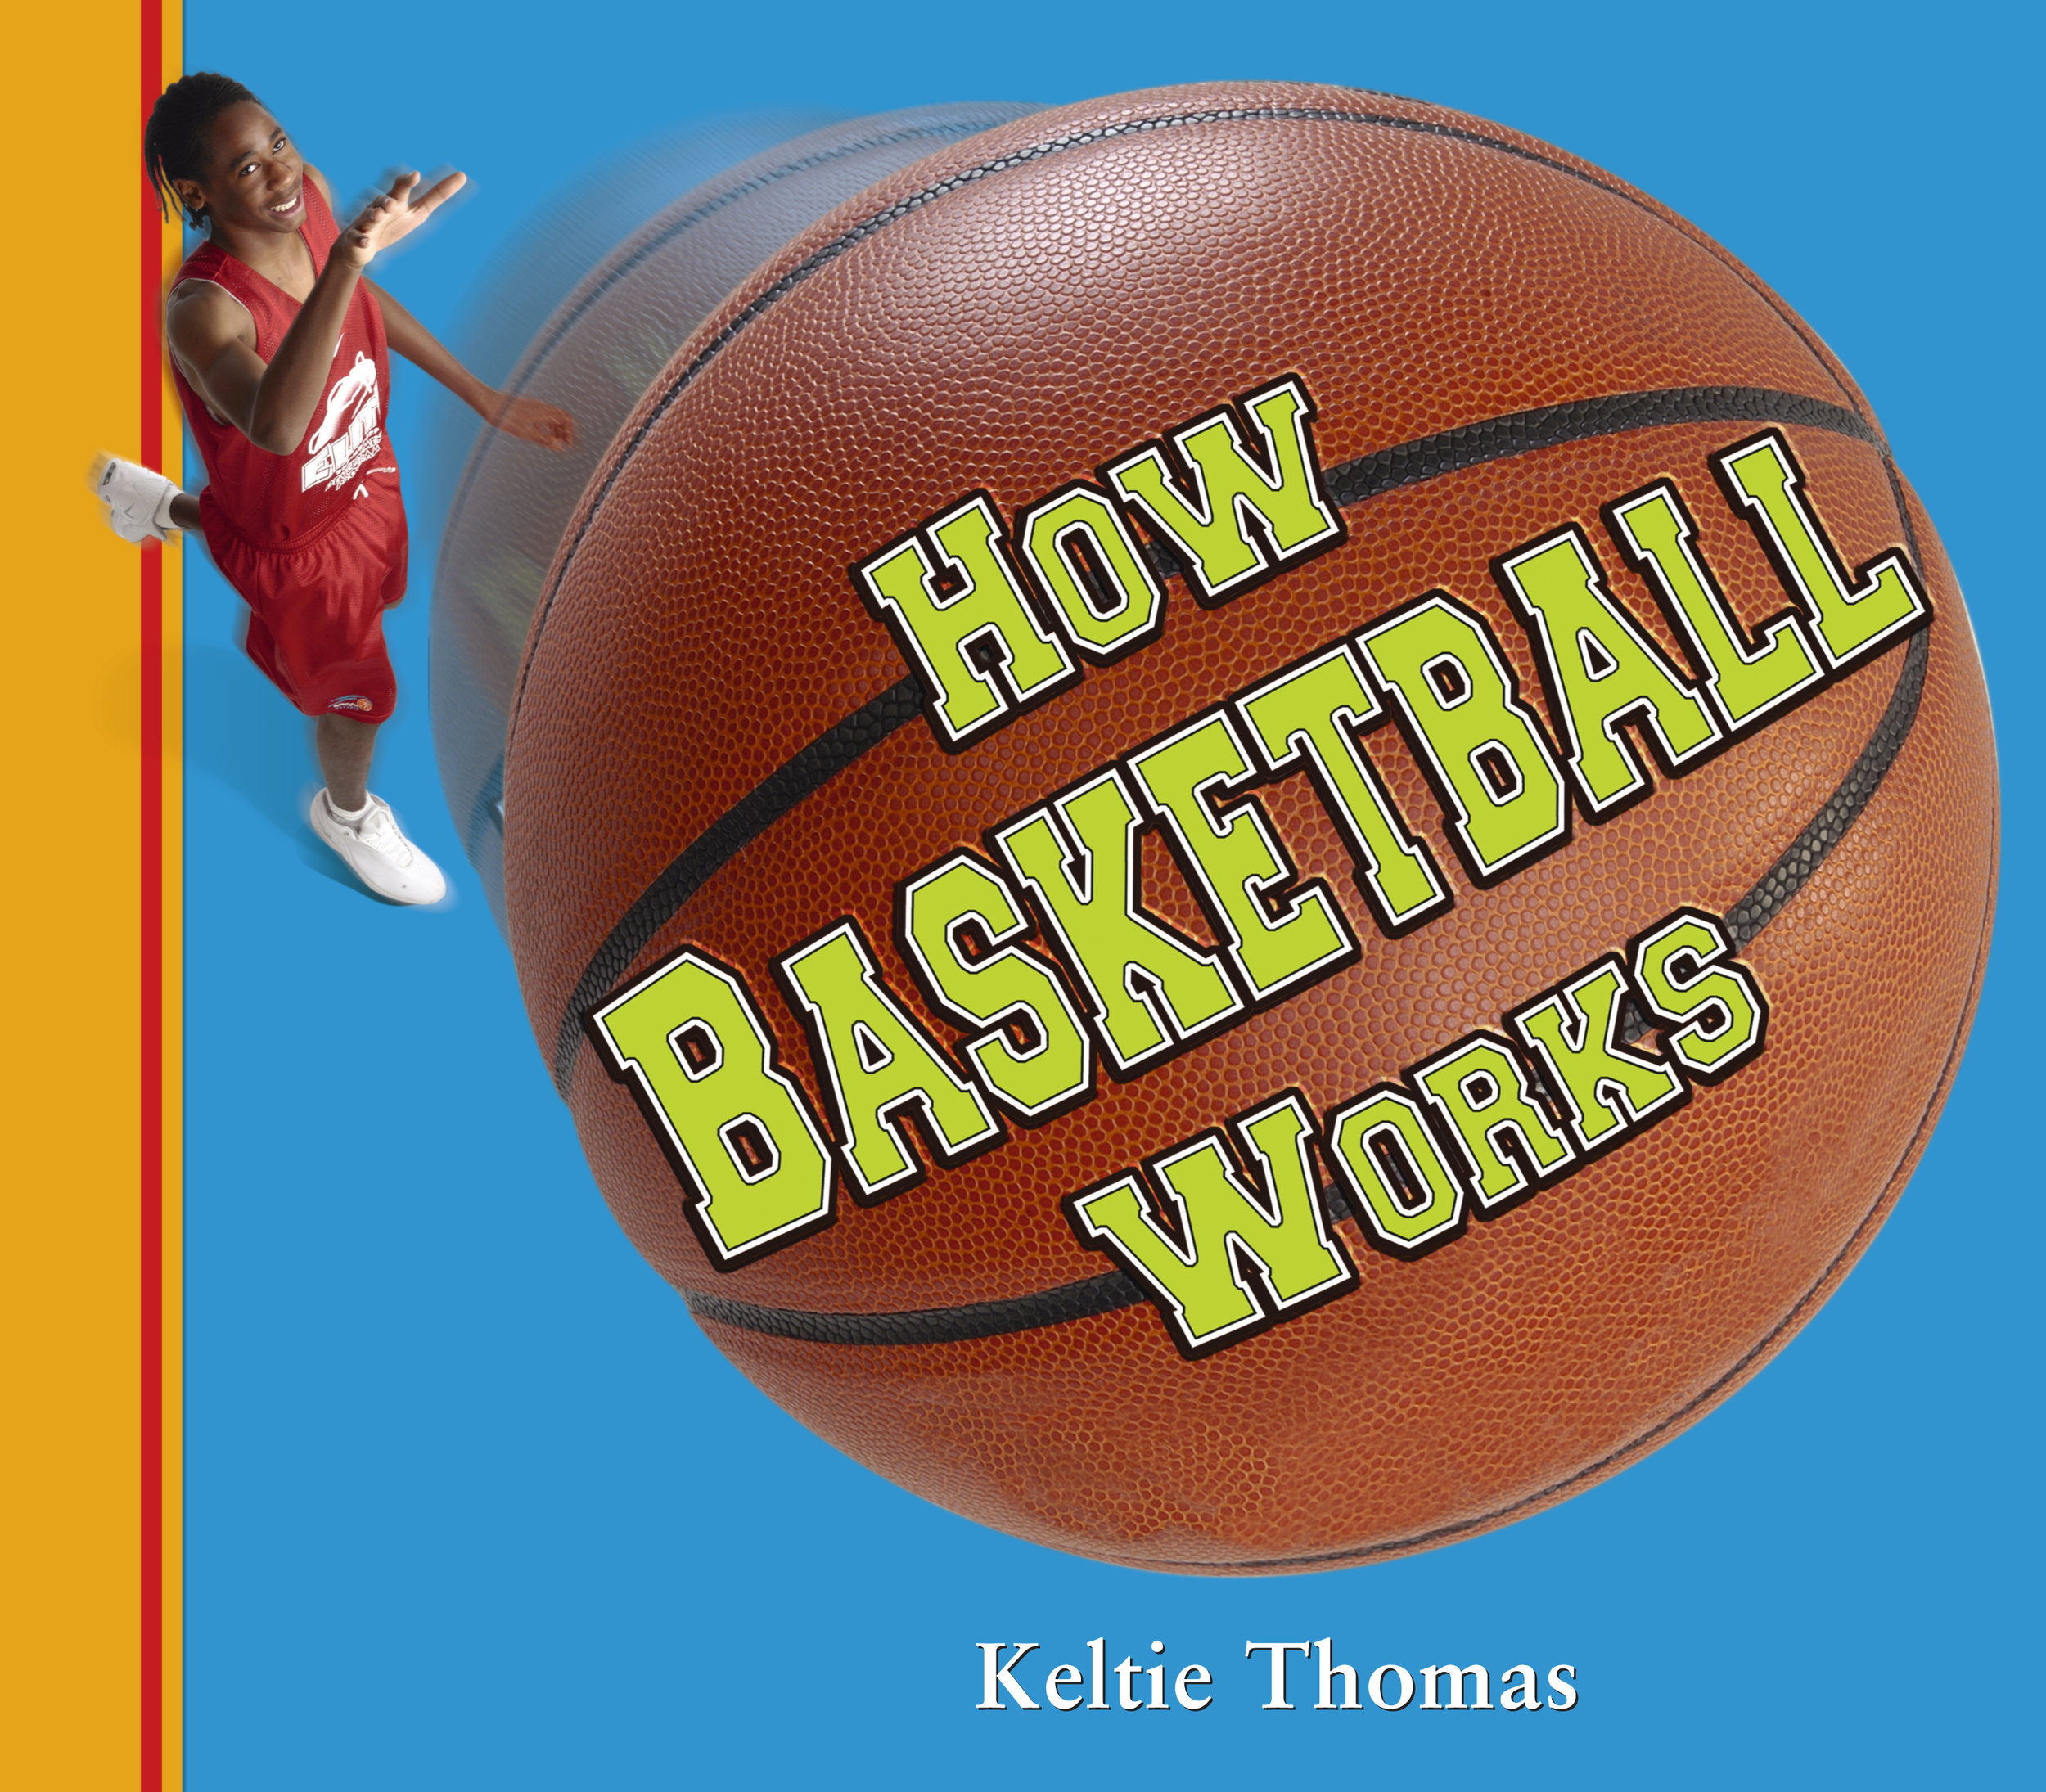 How Basketball Works by Keltie Thomas